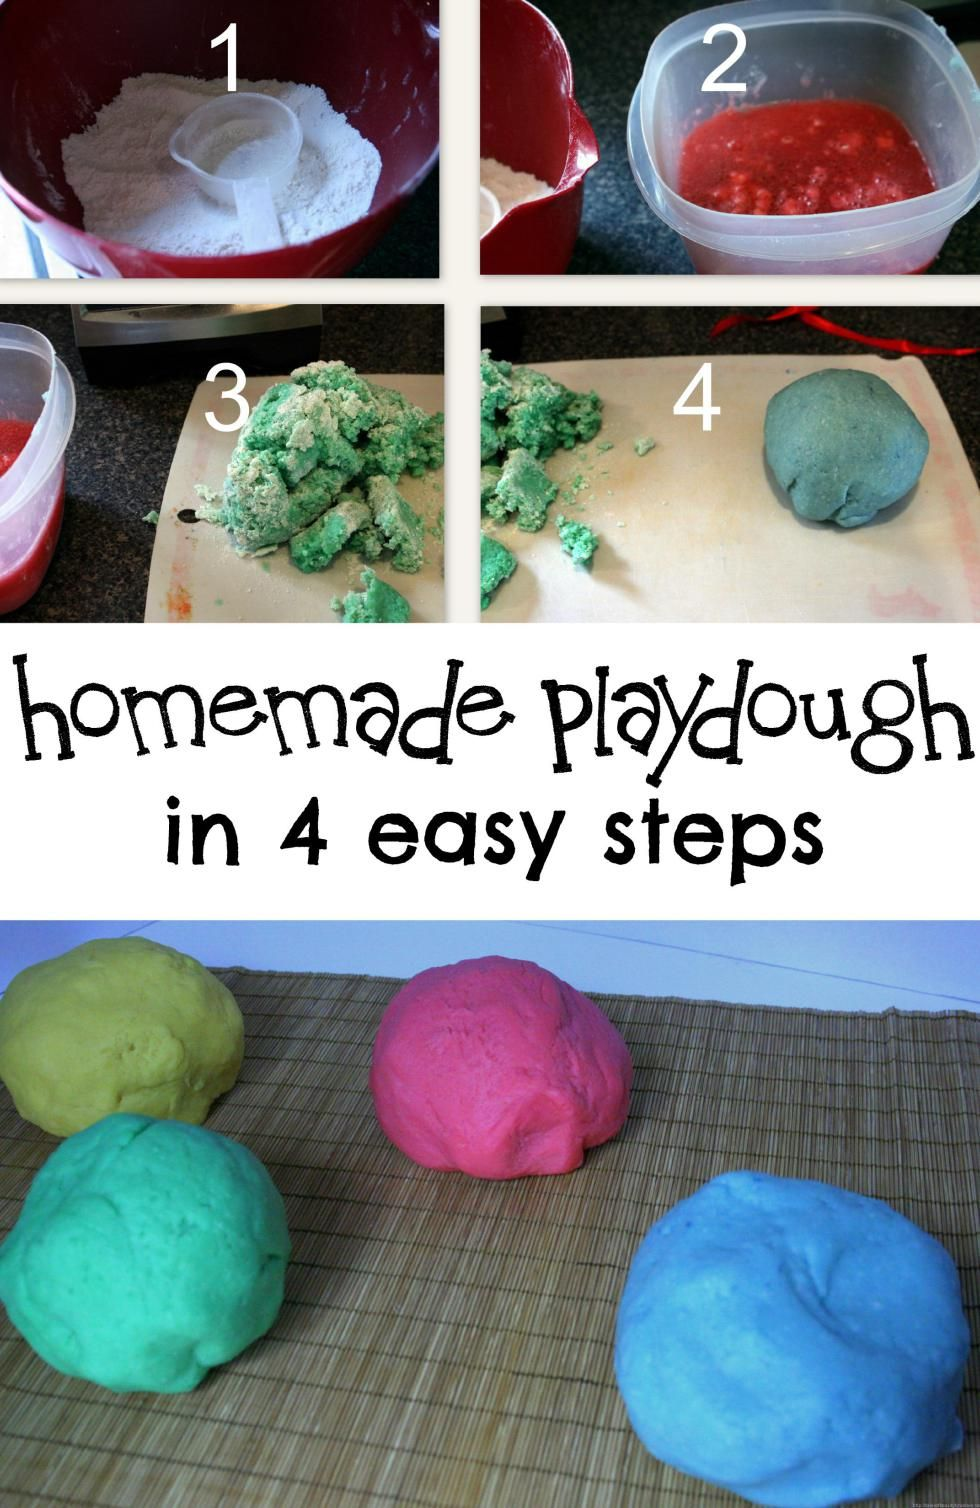 Home Made Play Dough In 4 Easy Steps Use Ingredients You Probably Already Have At Home You Could Even Homemade Playdough Home Made Playdough Recipe Playdough